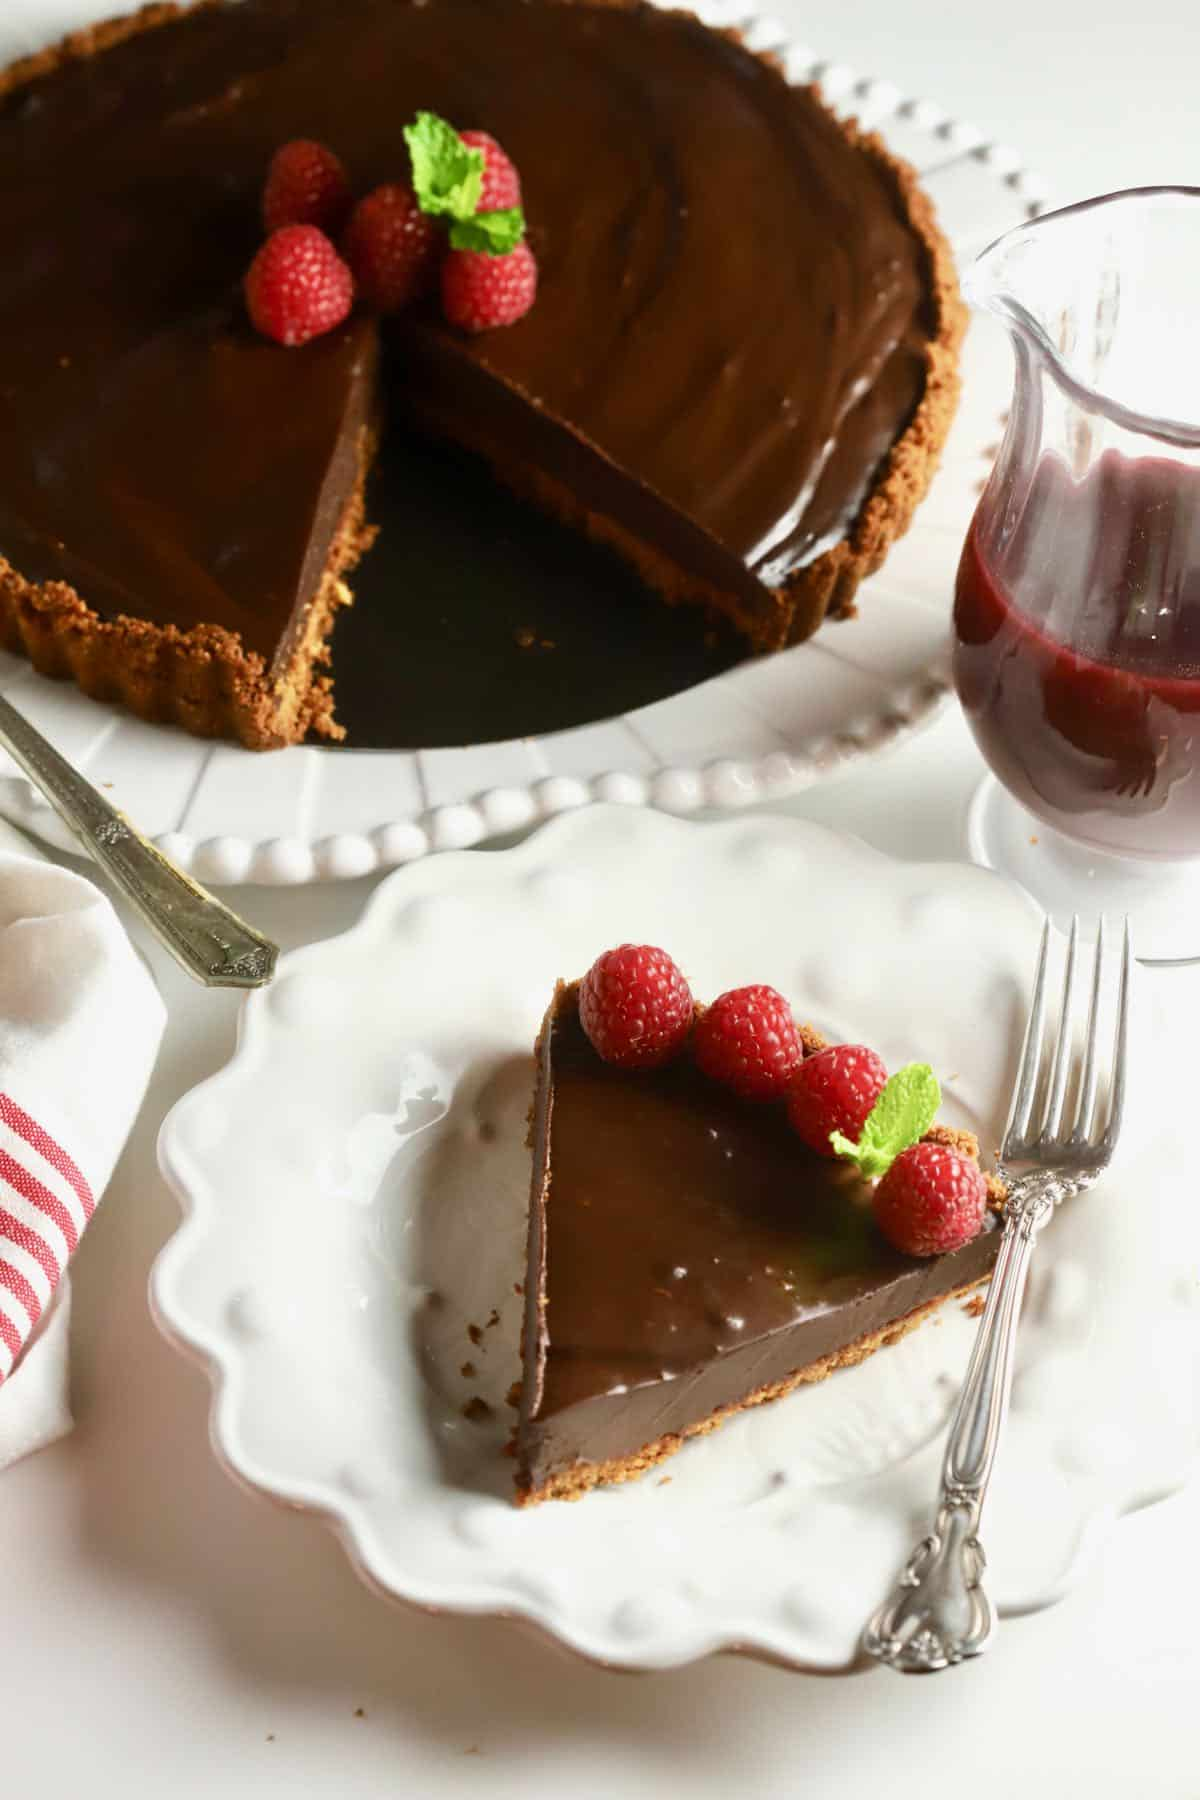 A chocolate ganache tart with a slice cut out and on a white plate.